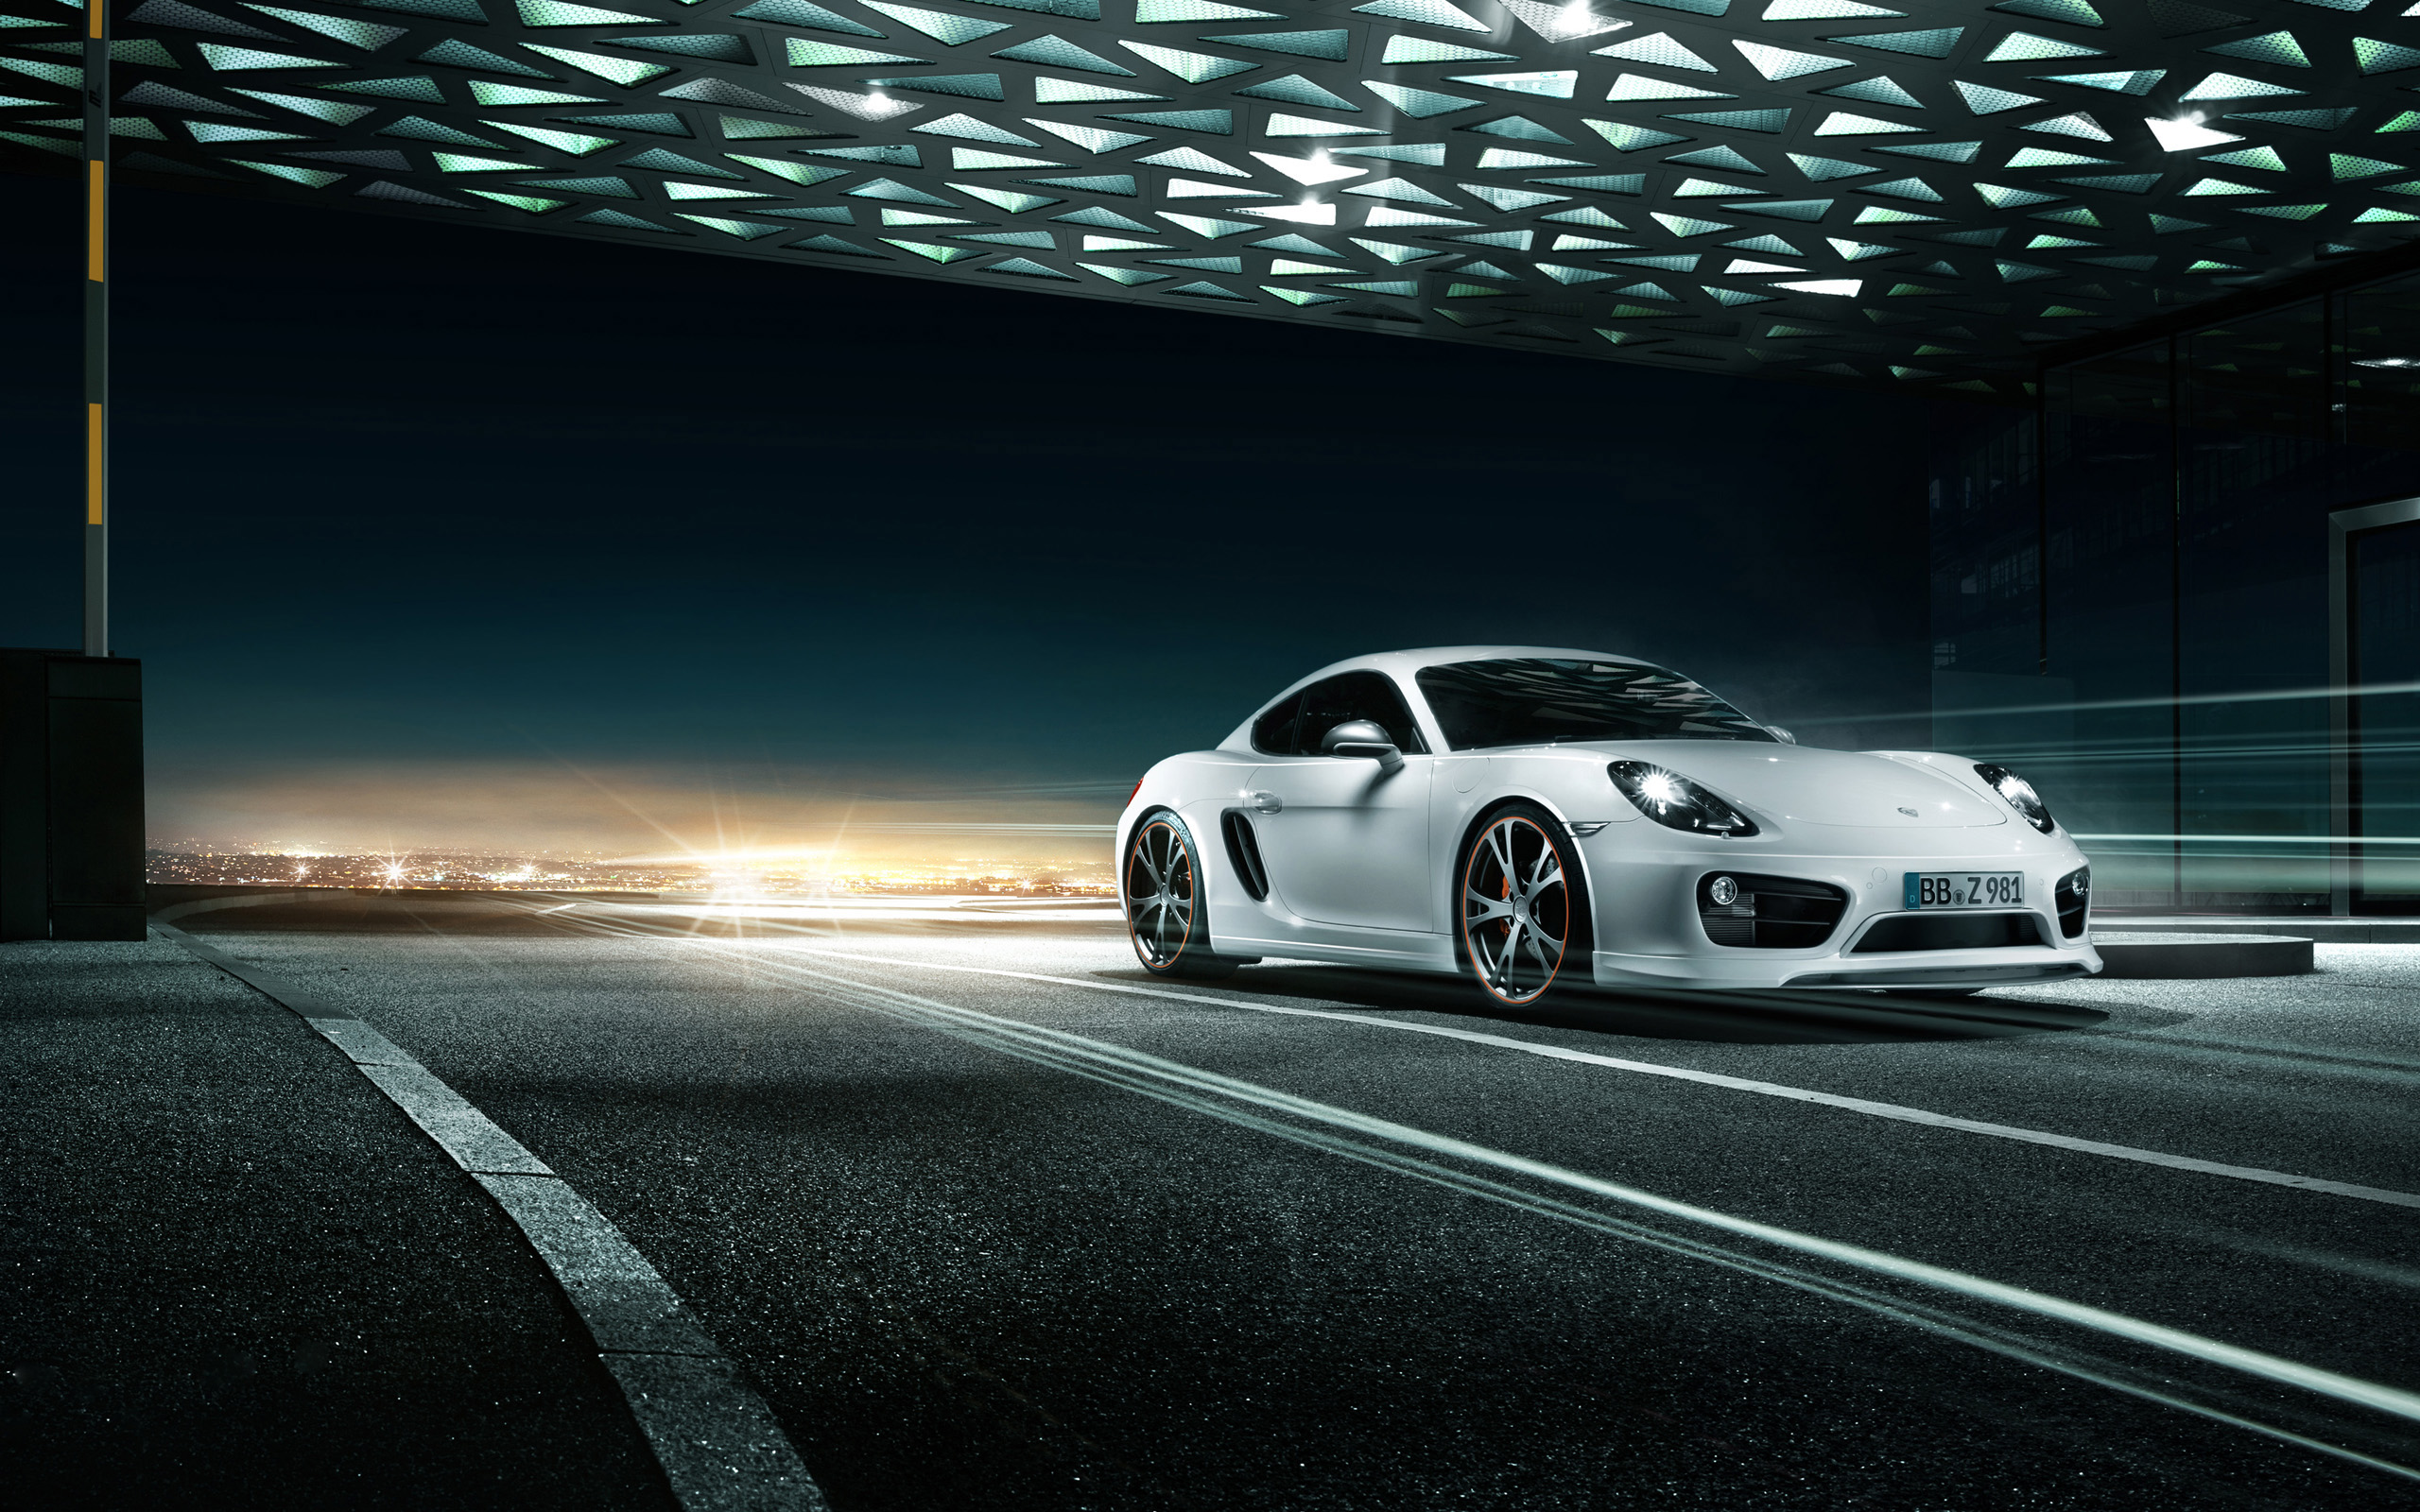 Porsche Cayman Wallpaper HD